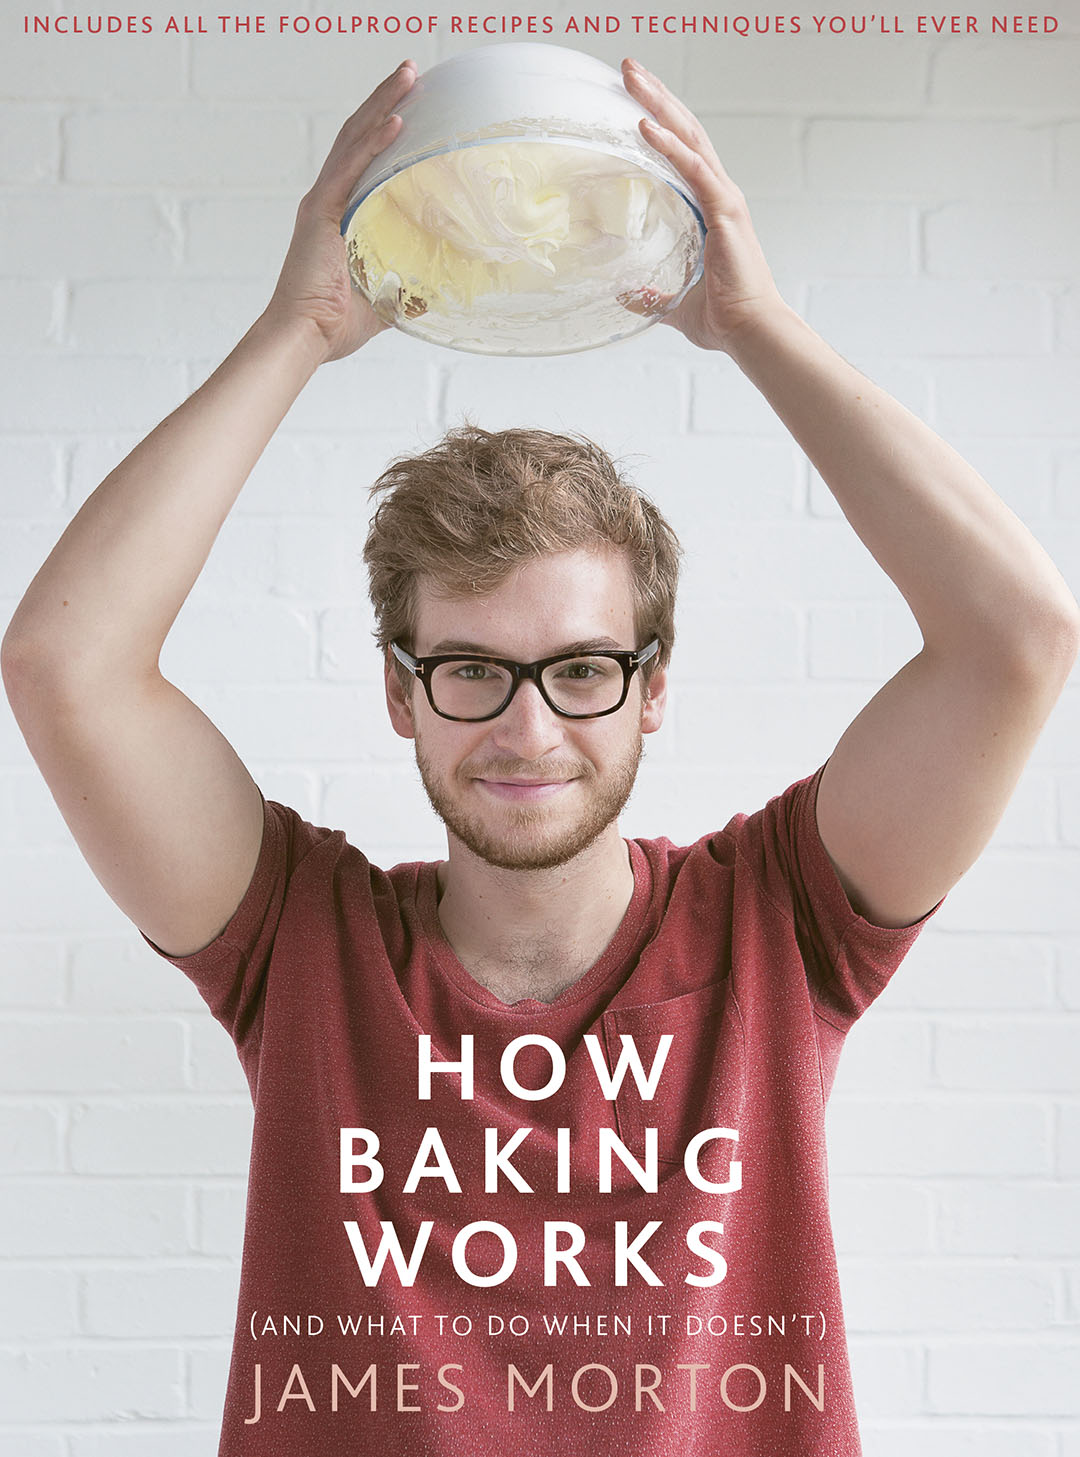 james morton how baking works book cover